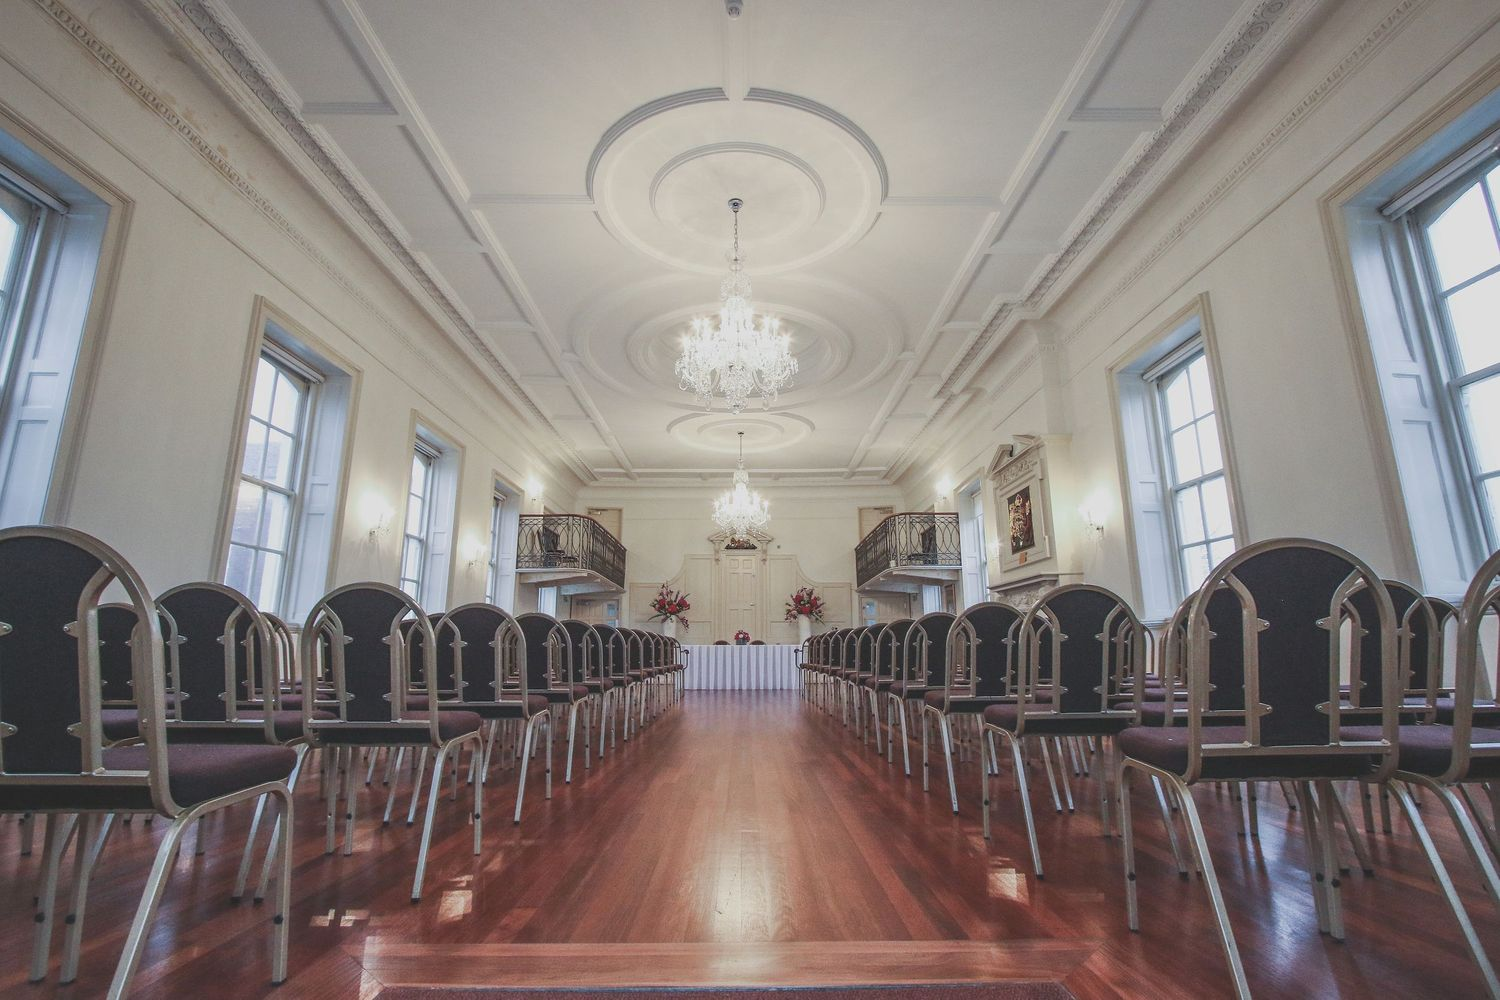 Interior of The Guildhall Registry Office in Poole